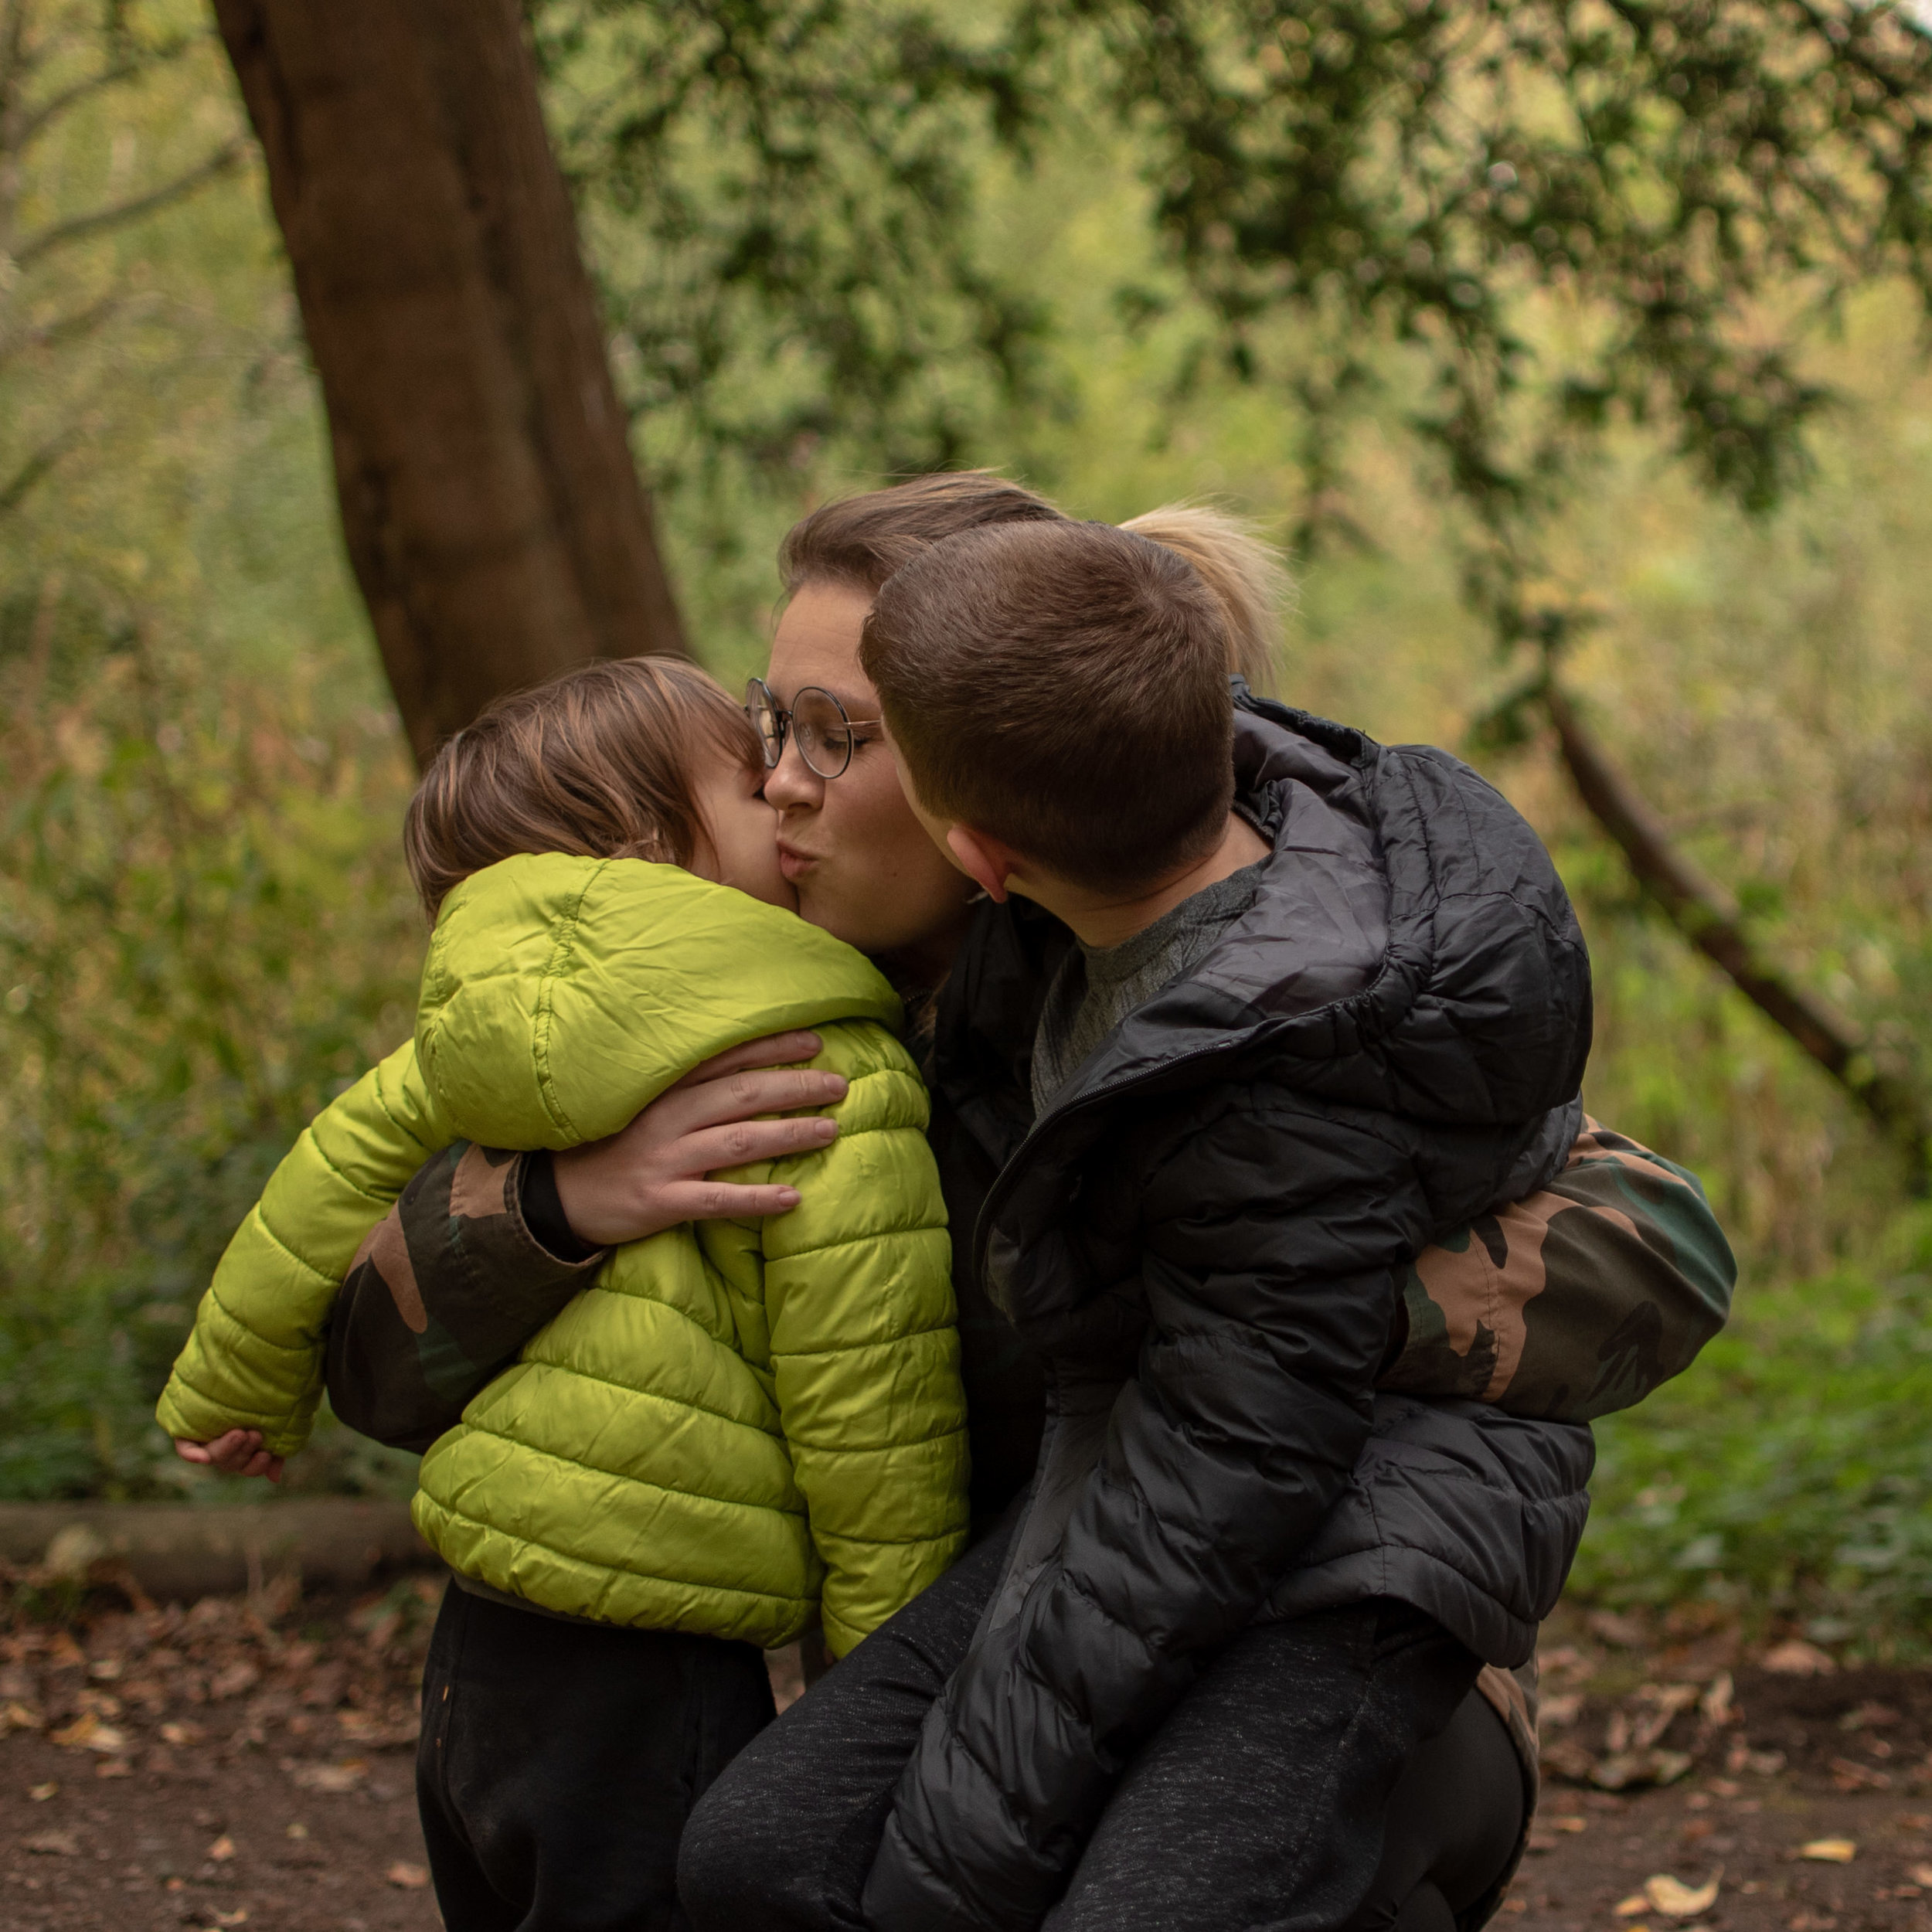 What an adorable family - I can't wait to photograph their wedding next summer in Nottingham!